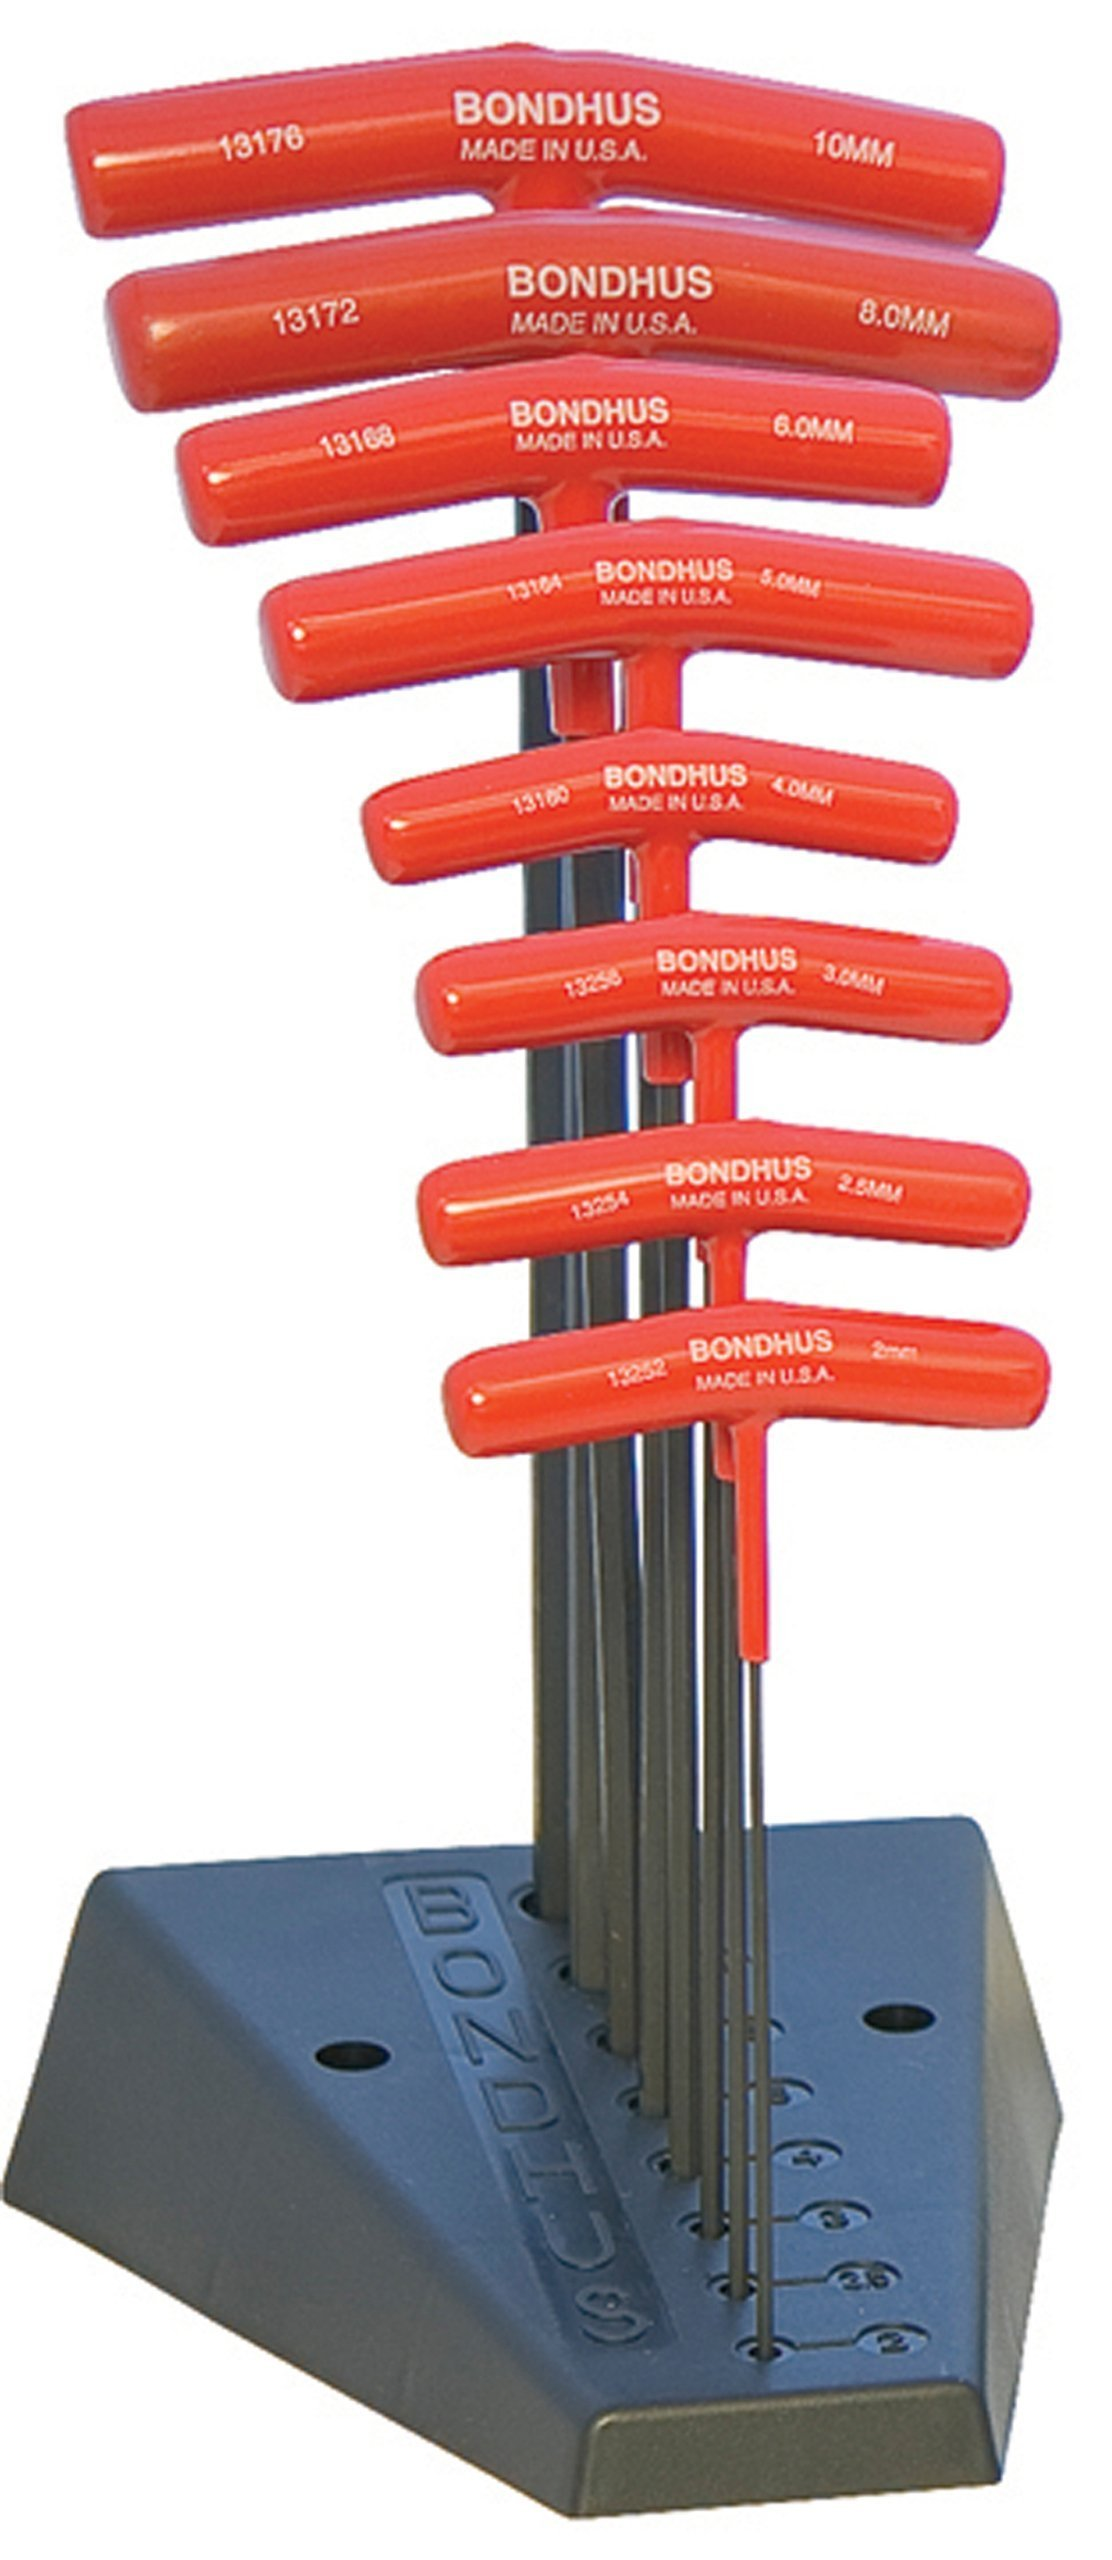 Bondhus 15389 Set of 8 Hex T-Handles with Stand, 9'' Length, Sizes 2-10mm by Bondhus